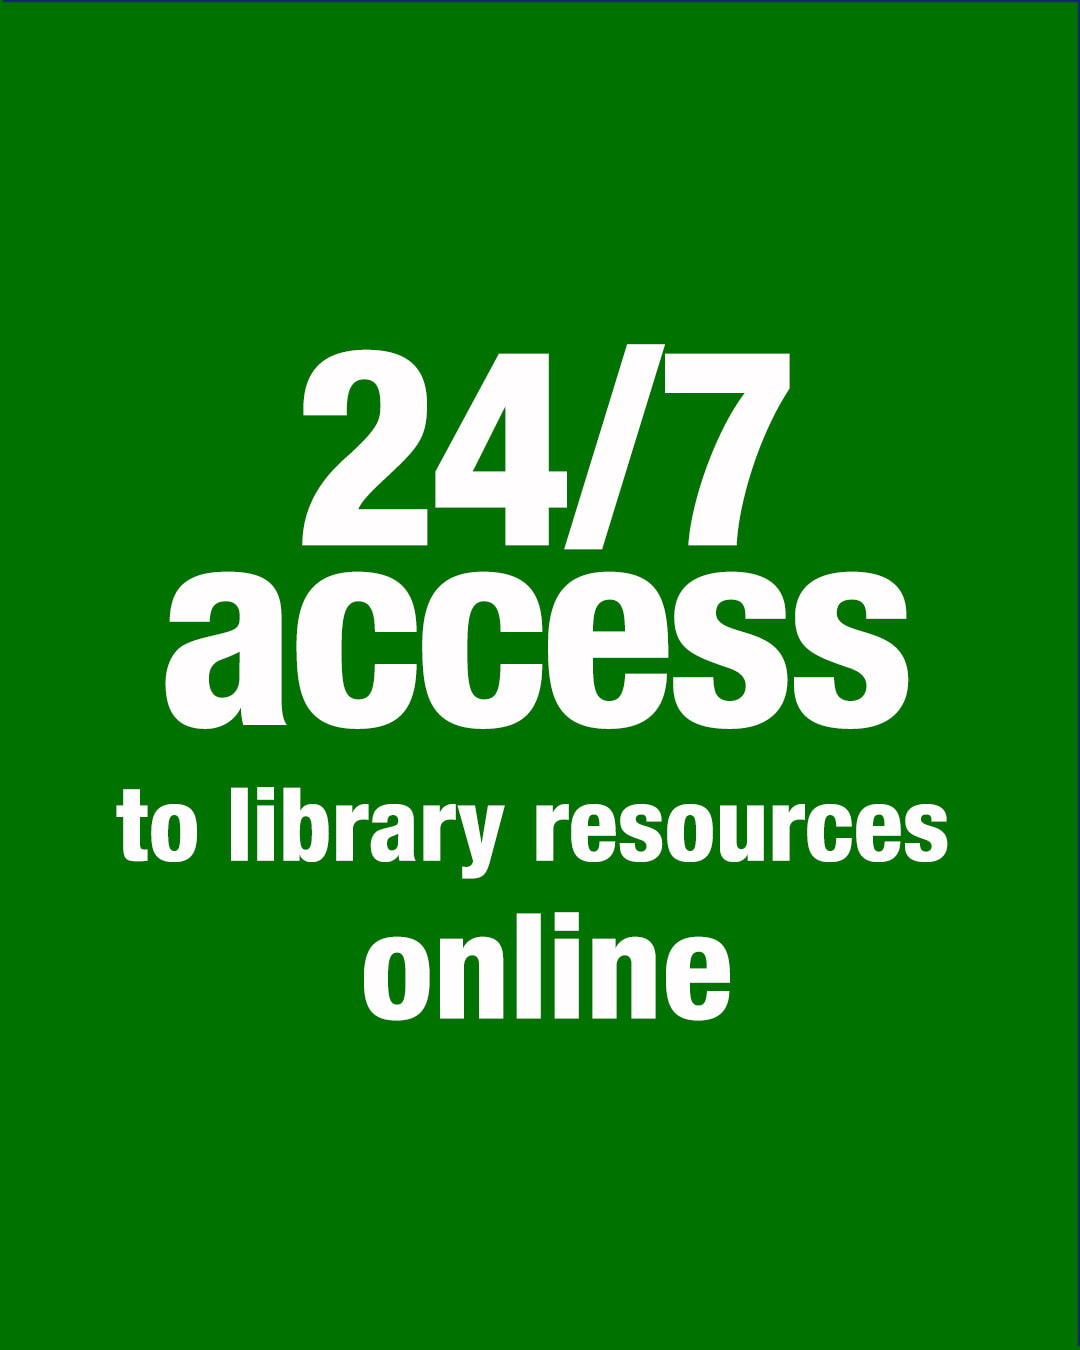 24/7 access to library resources online